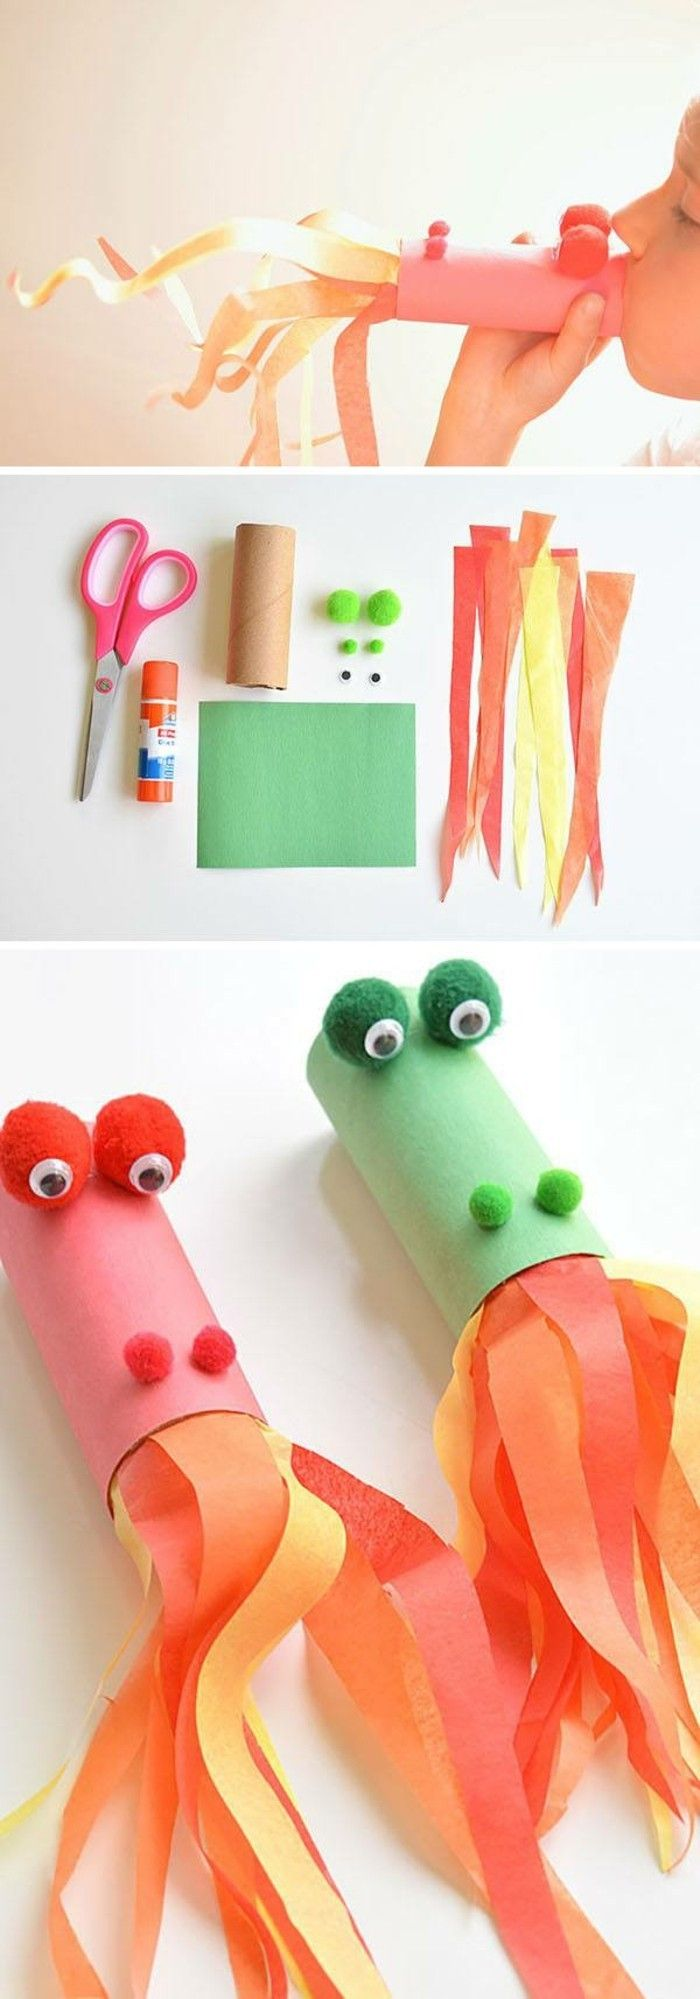 tinker with rolls of toilet paper diy ideas decode ideas tinker with children being